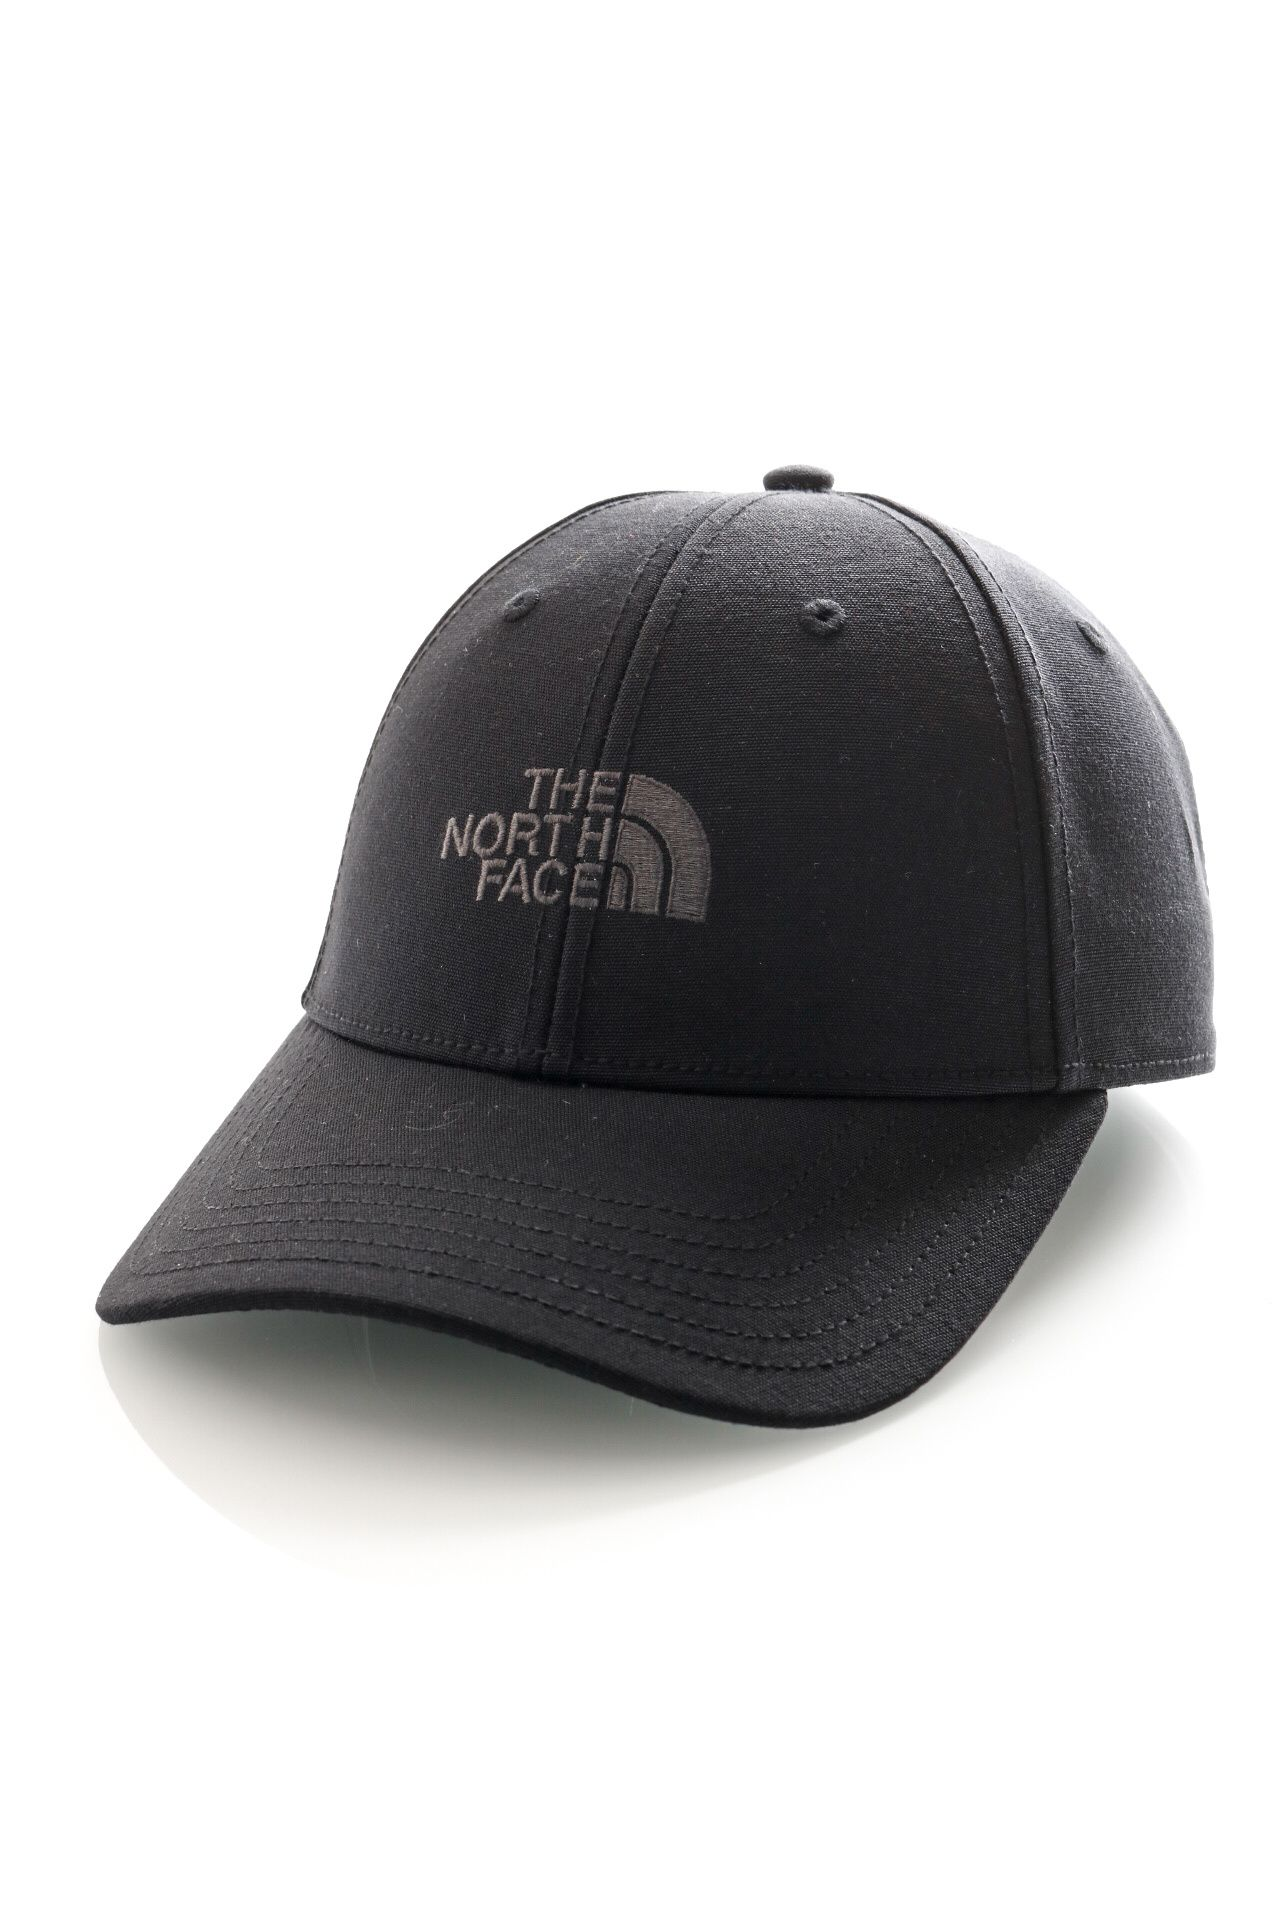 Afbeelding van The North Face Dad Cap Rcyd 66 Classic Hat Tnf Black NF0A4VSVJK31